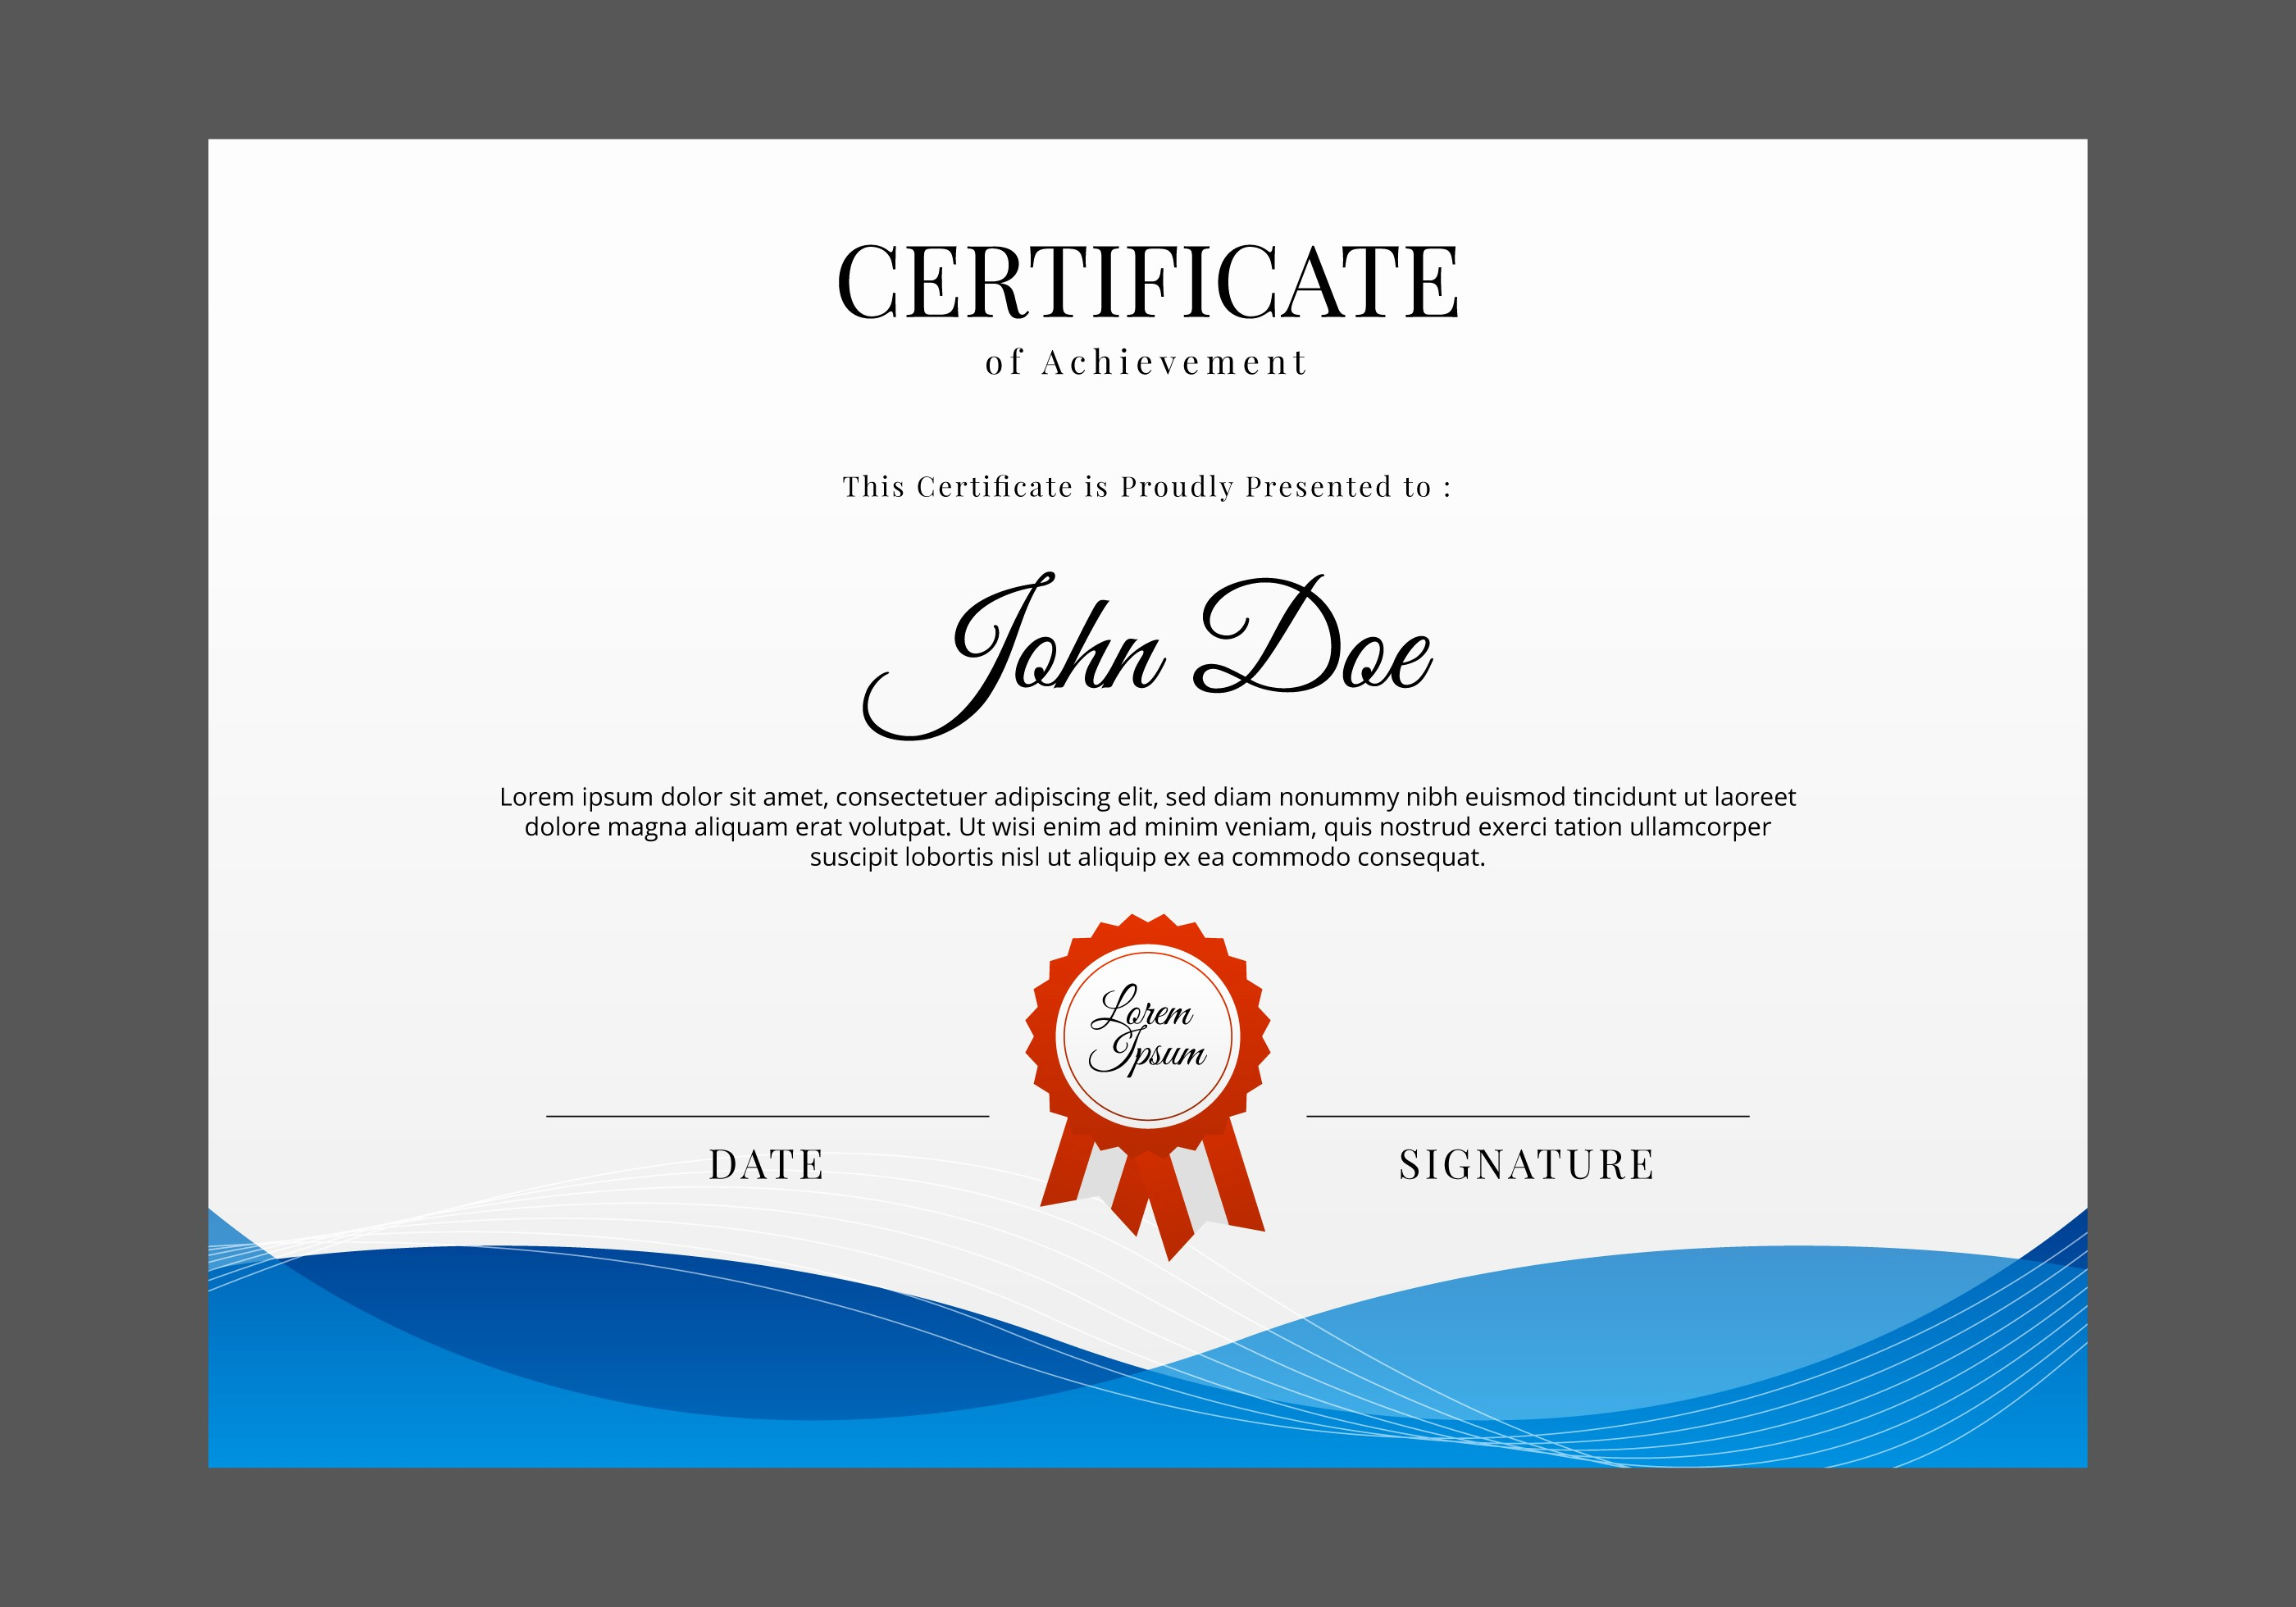 Training Certificates Templates Free Download Unique Certificate Template Free Vector Art Free Downloads